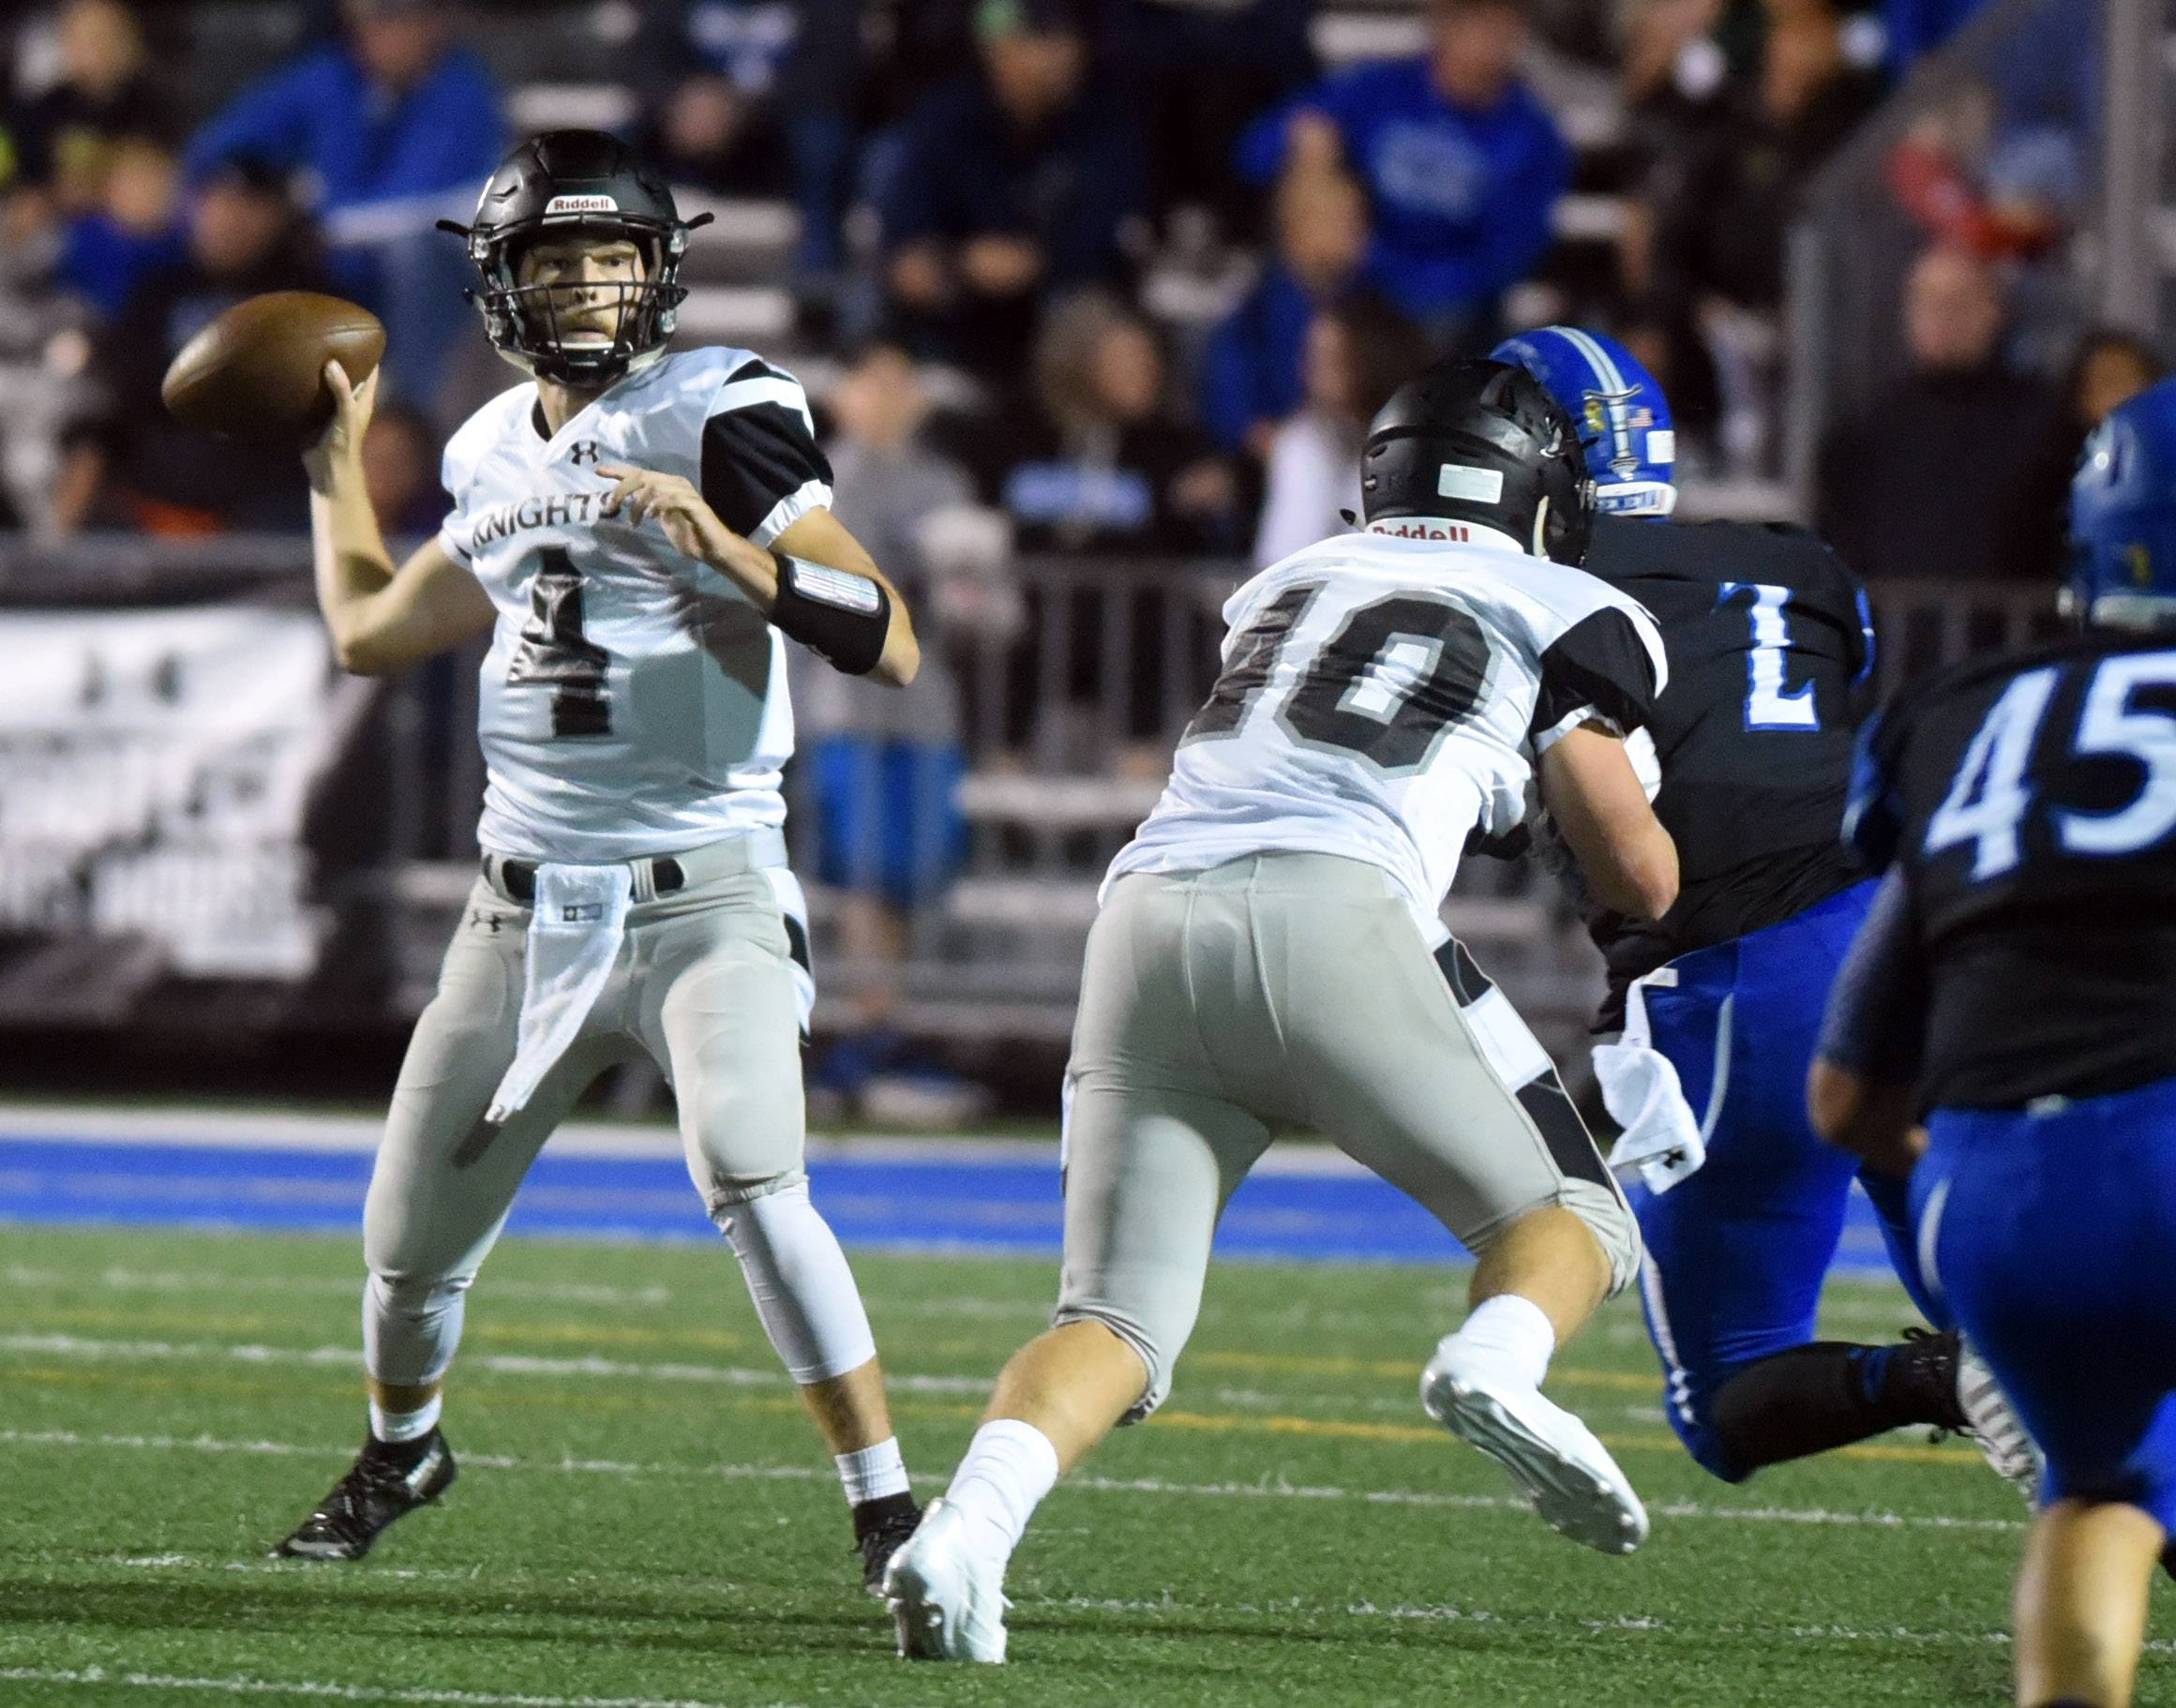 Kaneland quarterback Jack Douglas (4) rears back to pass against Geneva during Friday's game in Geneva.